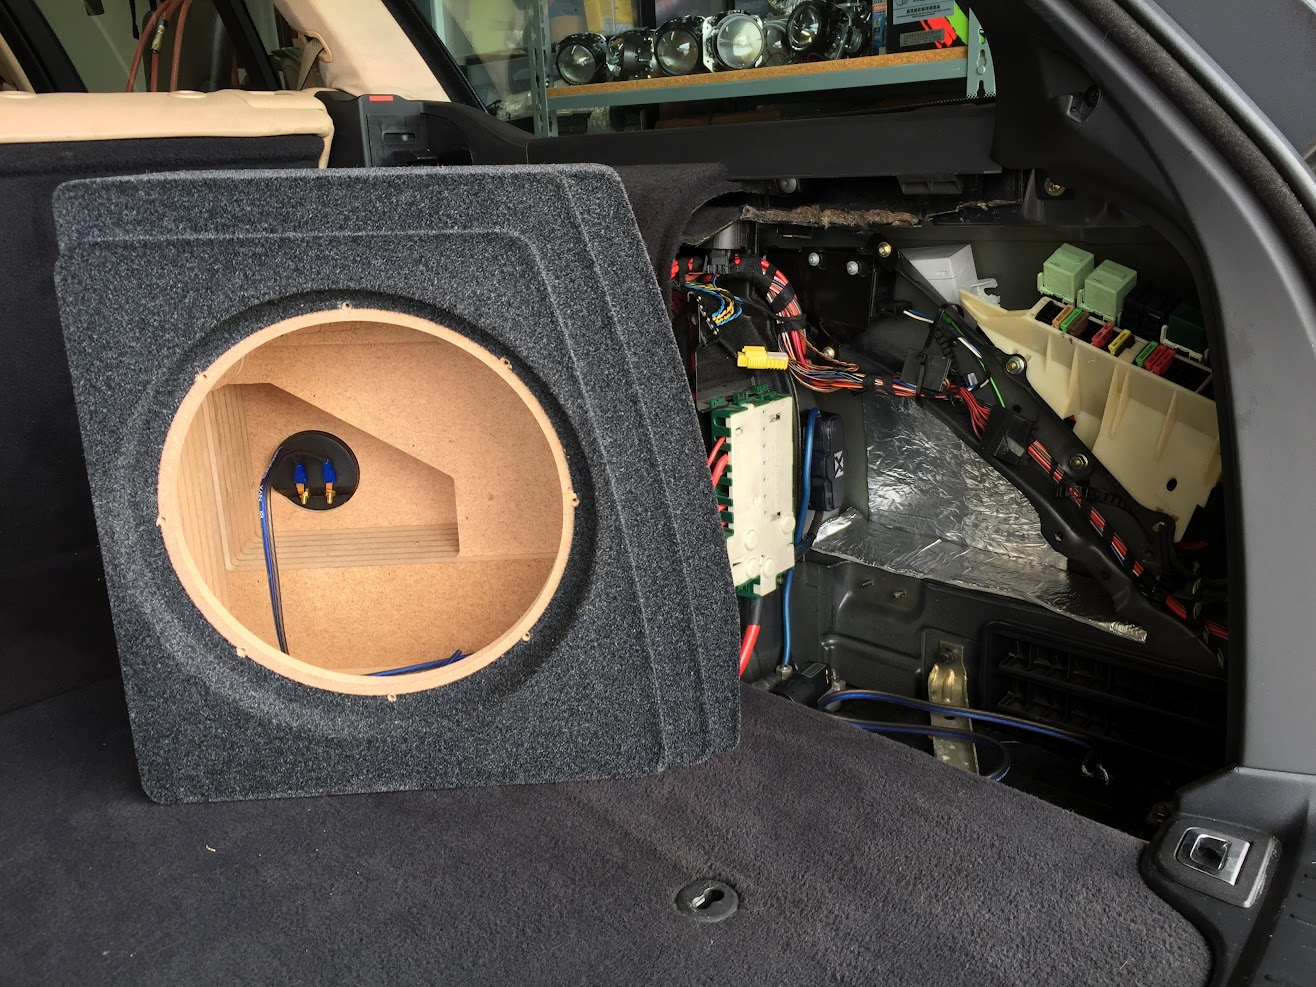 hight resolution of in addition to some work getting the enclosure to fit properly i needed to bore out the speaker opening to accommodate the large basket on the sundown